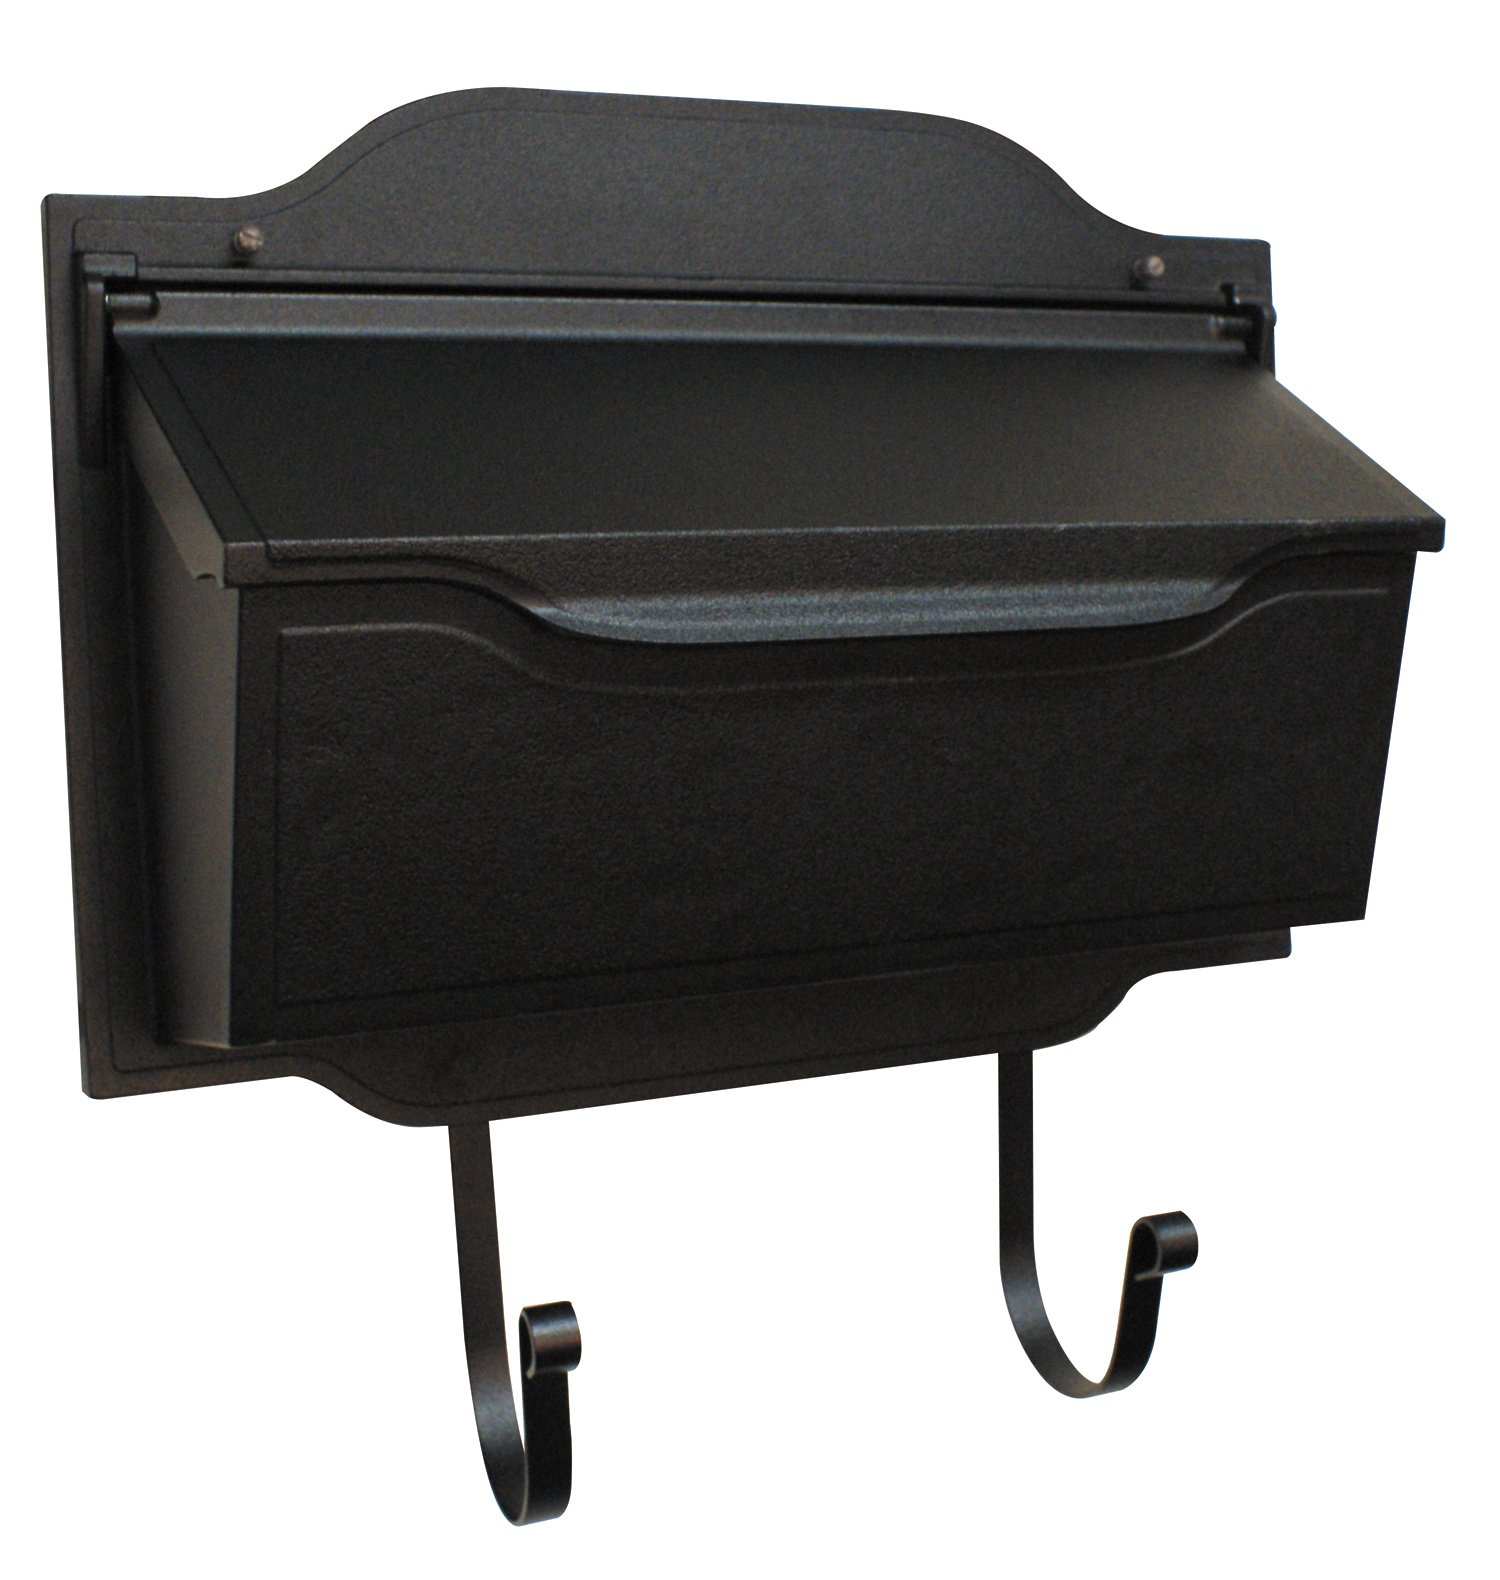 Special Lite Products Shc-1002-Blk Contemporary Horizontal Mailbox, Black